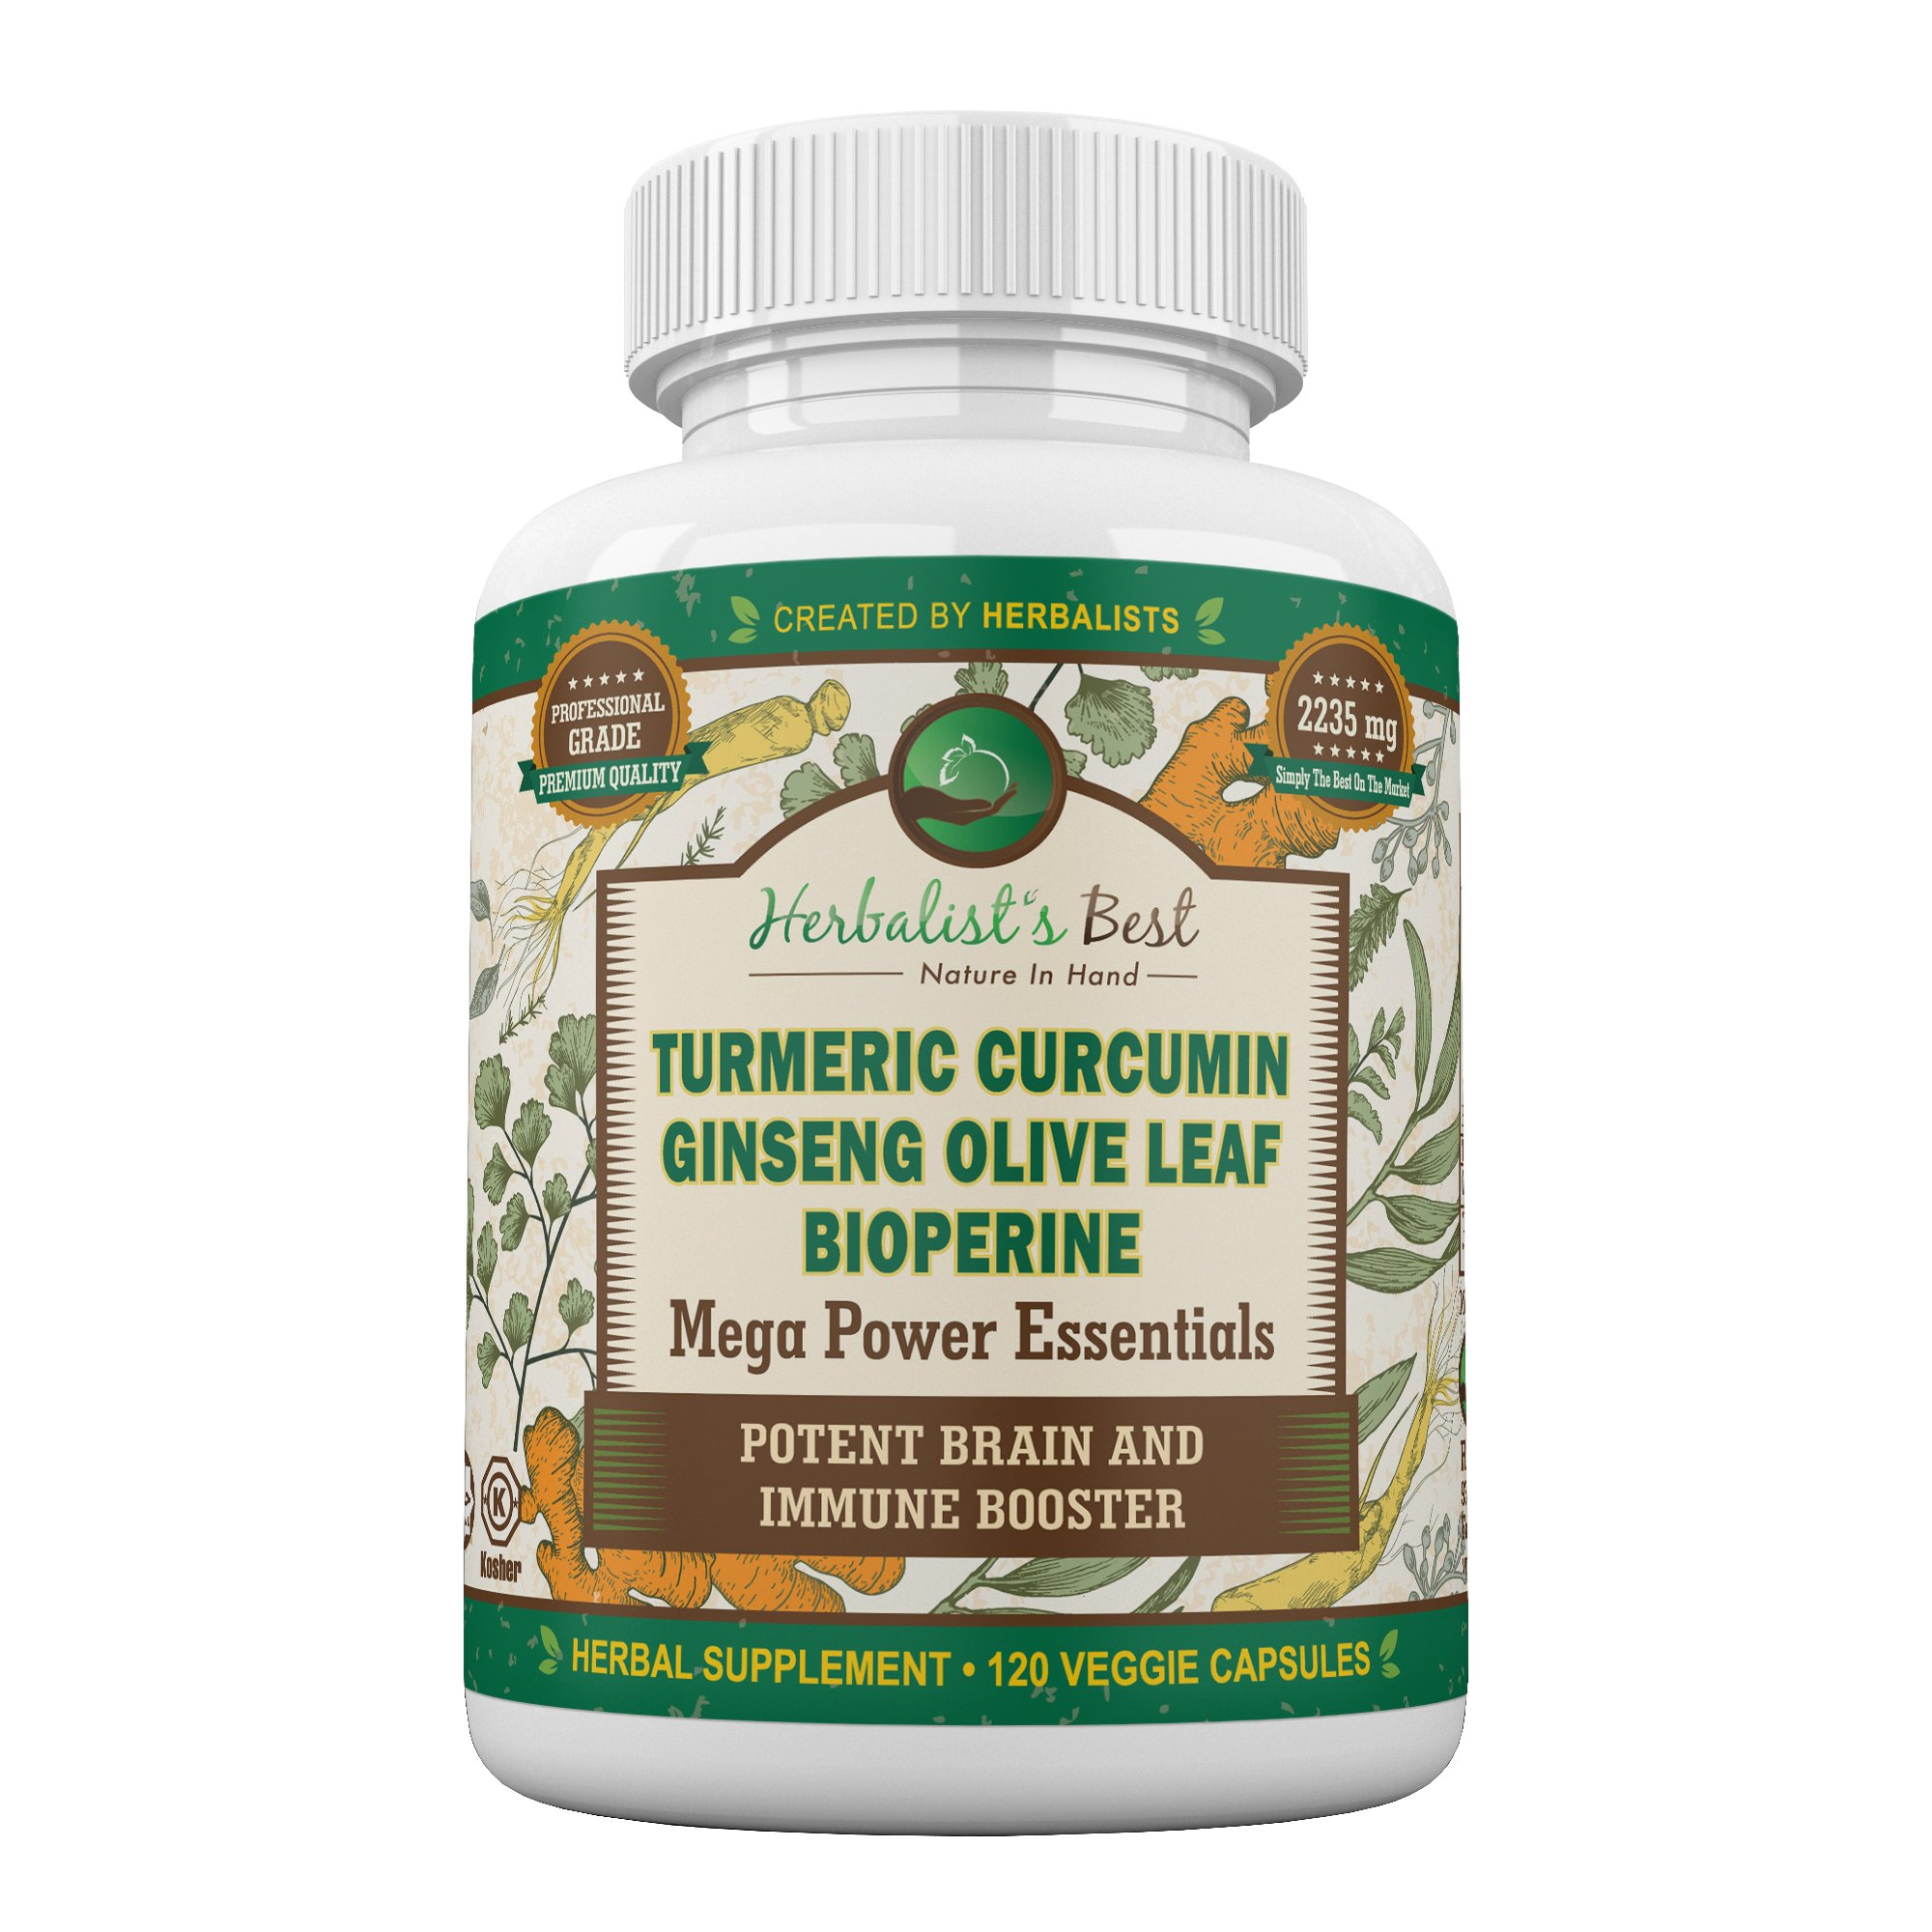 Turmeric Curcumin Ginseng Olive Leaf Bioperine 2235mg/day Mega Power Essential Extract by Herbalist's Best 95% Curcuminoids 100% Natural Immune Booster Anti Inflammatory Anti Aging Antioxidant